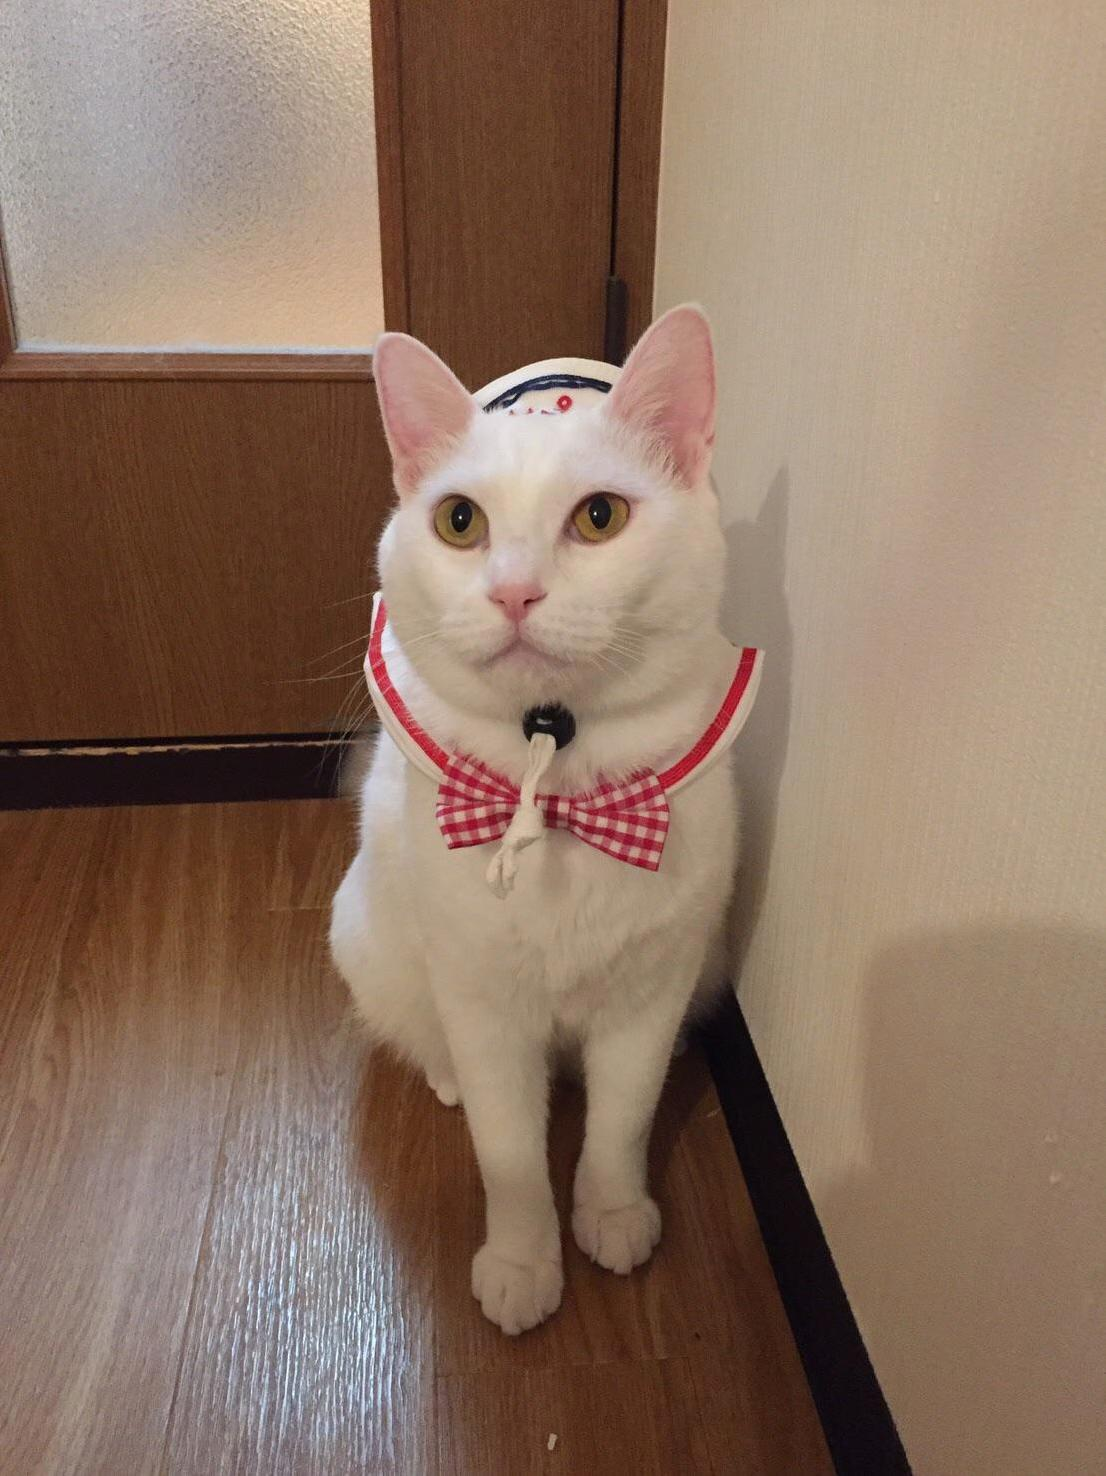 Sailor alice before she ships off for duty